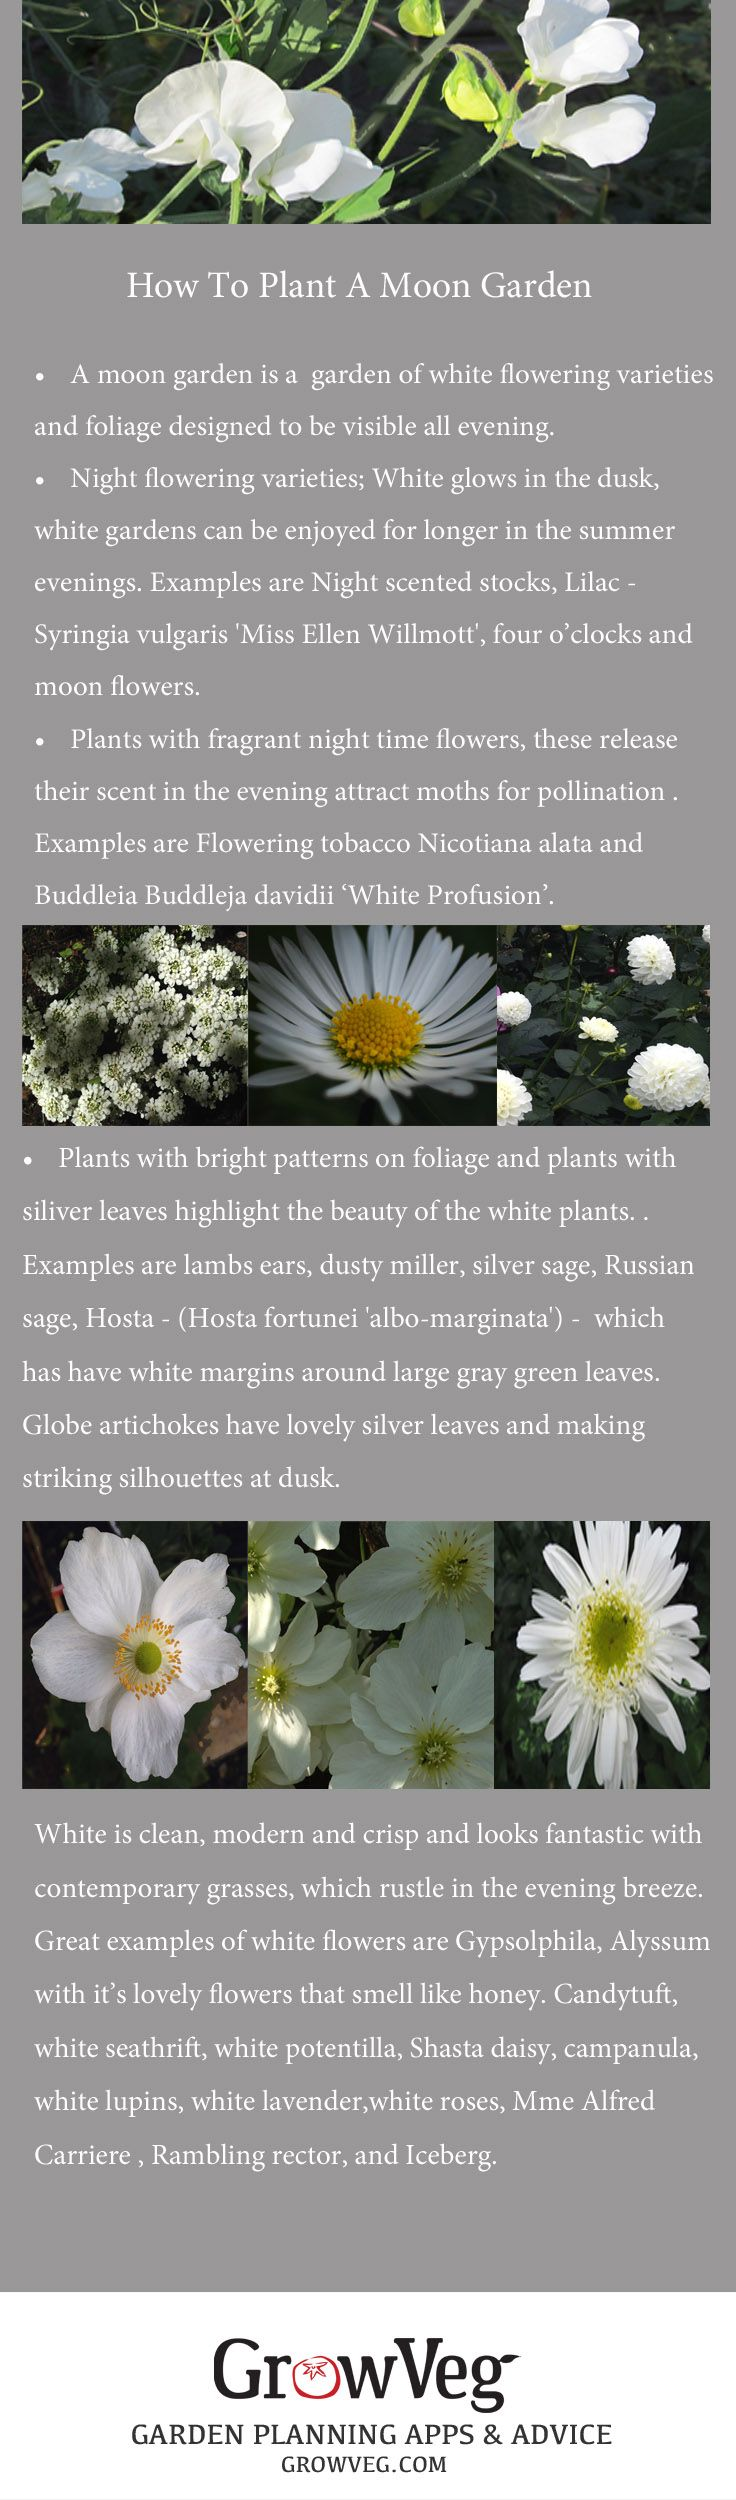 How To Plant A Moon Garden With Beautiful, Glowing White Plants.